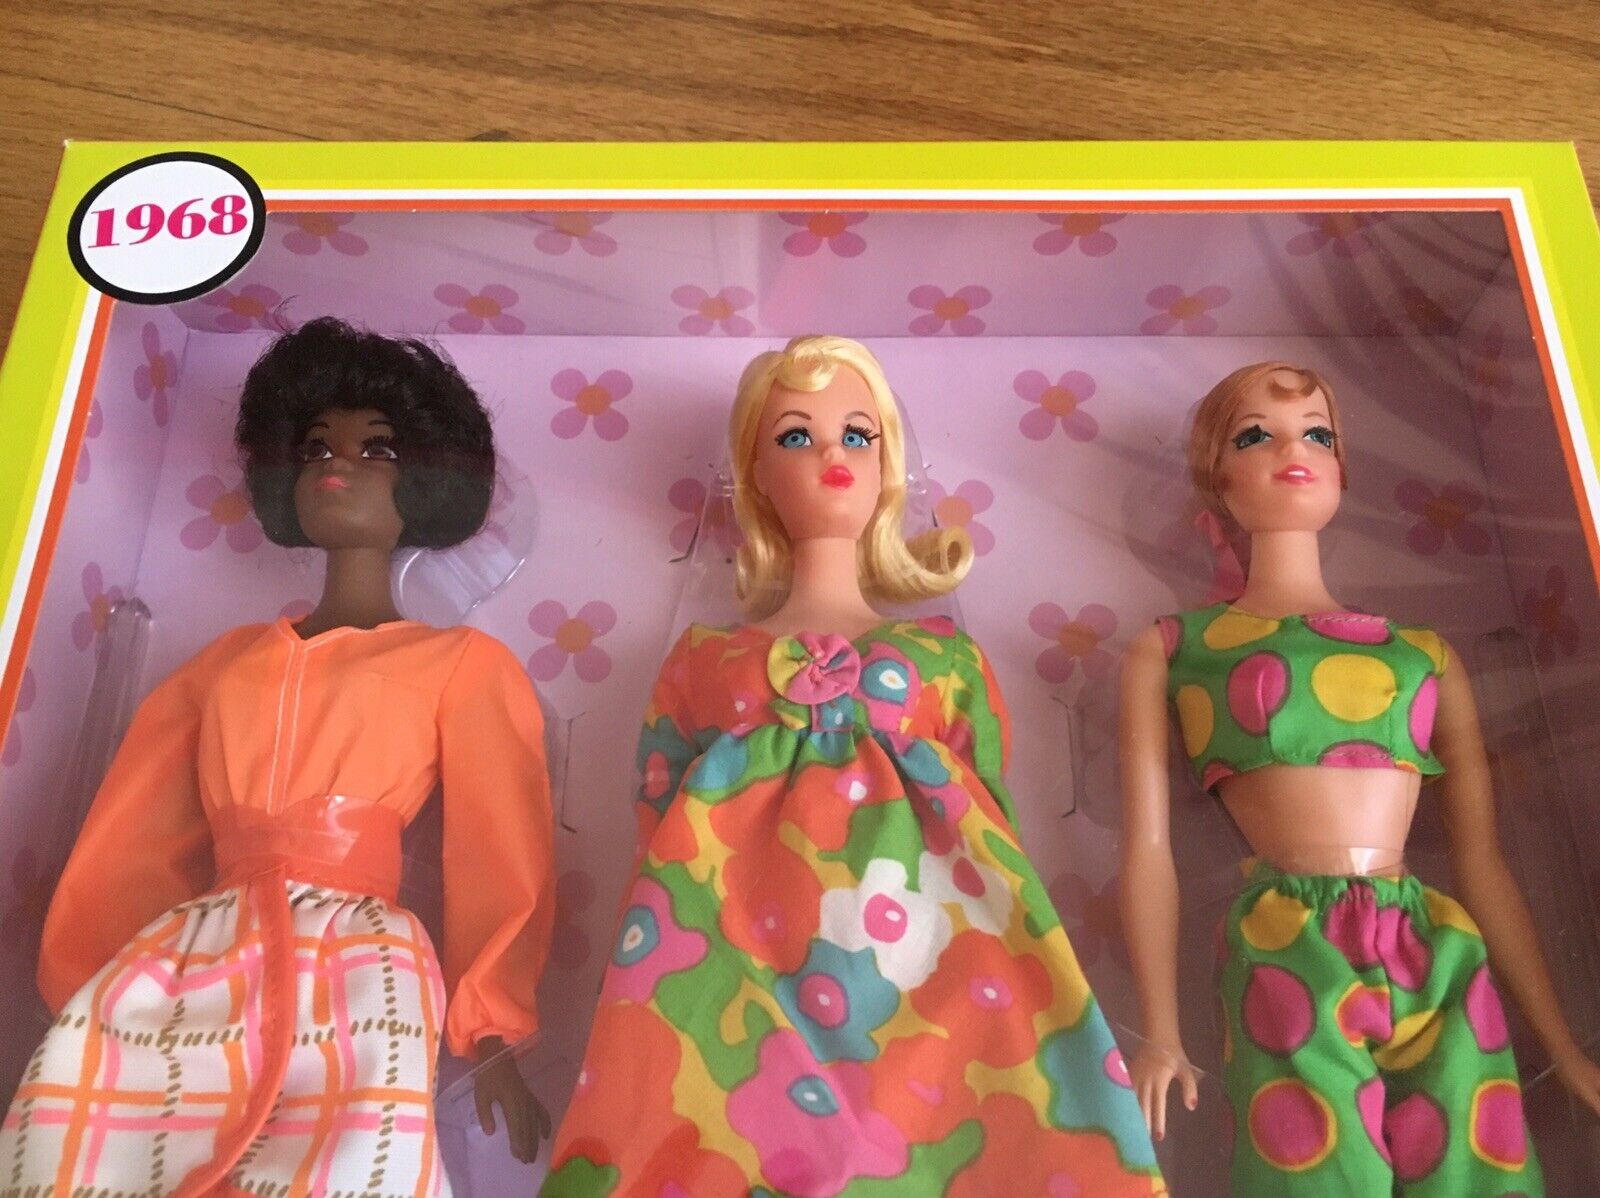 Barbie Badezimmer Set Barbie Barbie Barbie Mod Friends Repro 1968 Nrfb Mint 8bc955